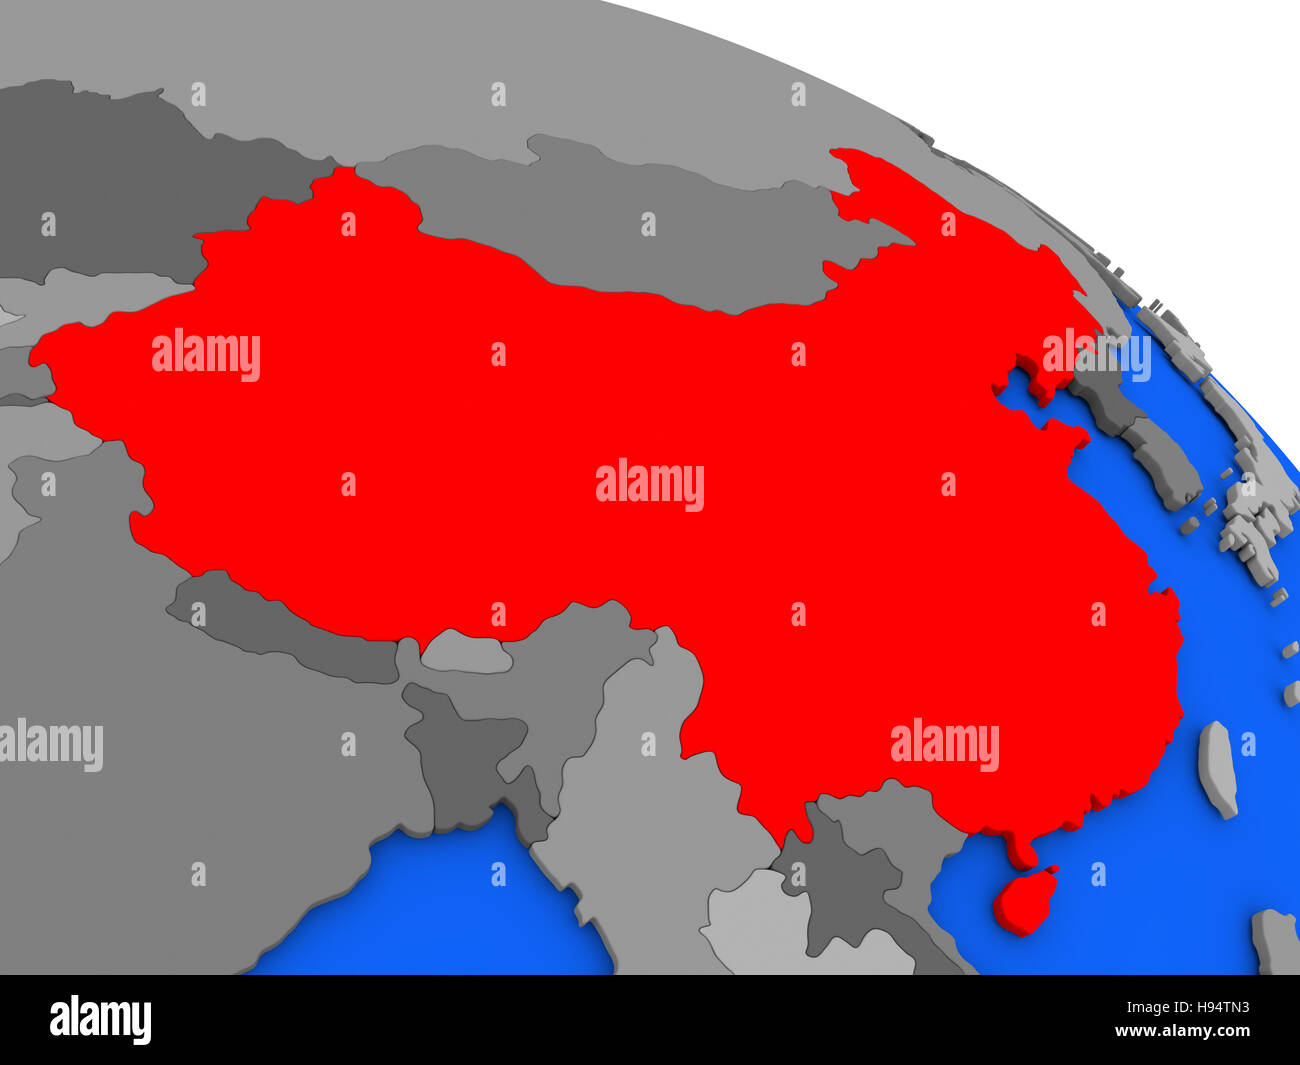 Map of china highlighted in red on a globe 3d illustration stock map of china highlighted in red on a globe 3d illustration gumiabroncs Choice Image